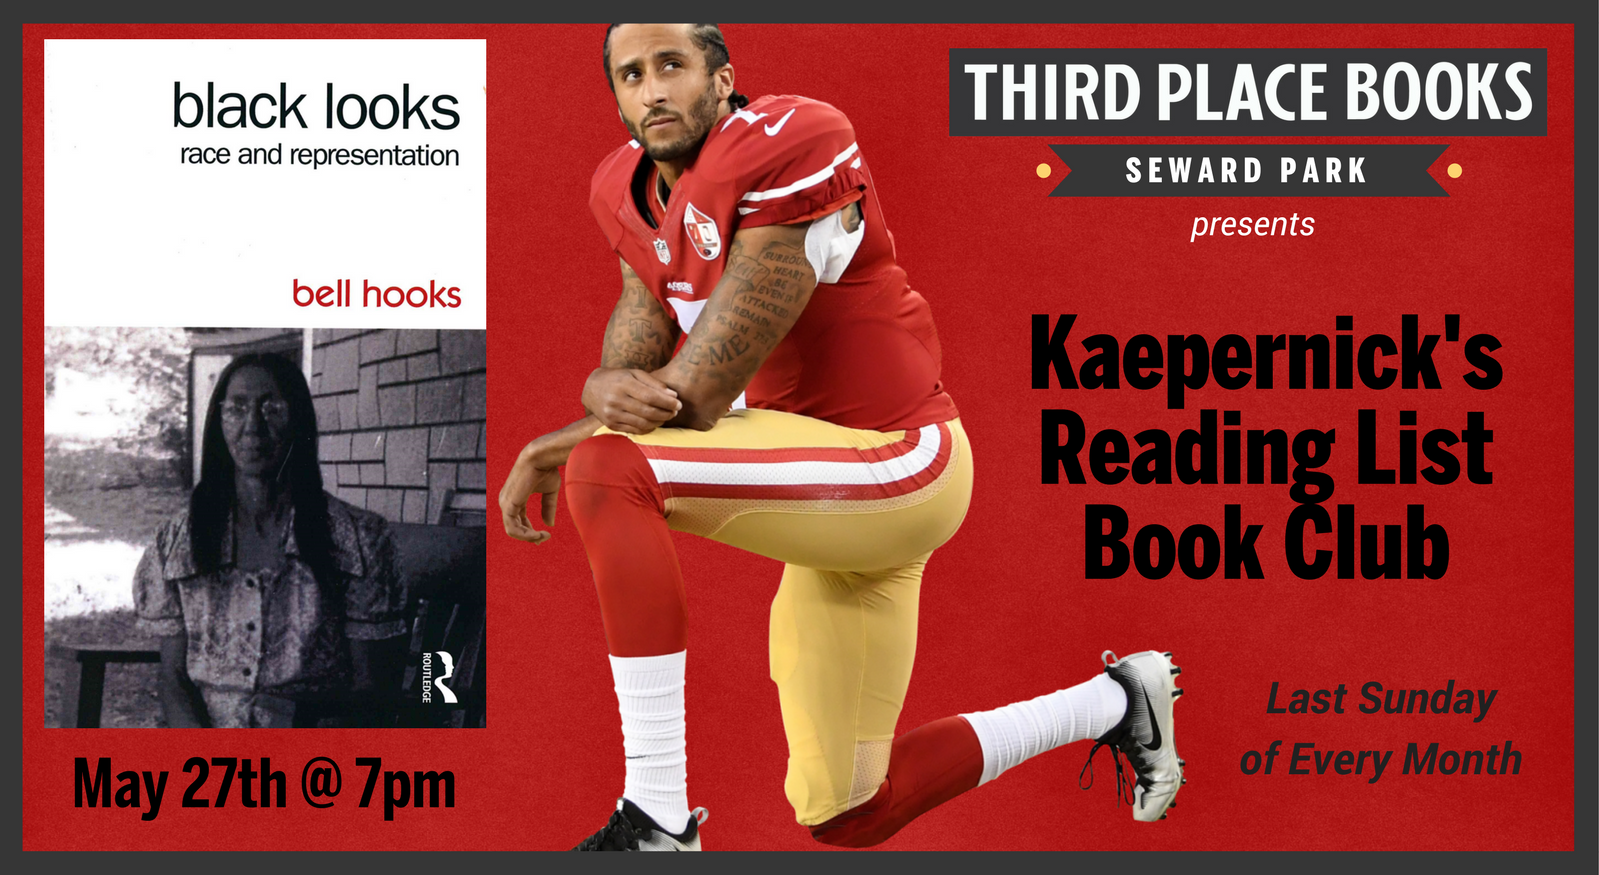 Kaepernick's Reading List Book Club reading Black Looks: Race and Representation on May 27th at 7pm